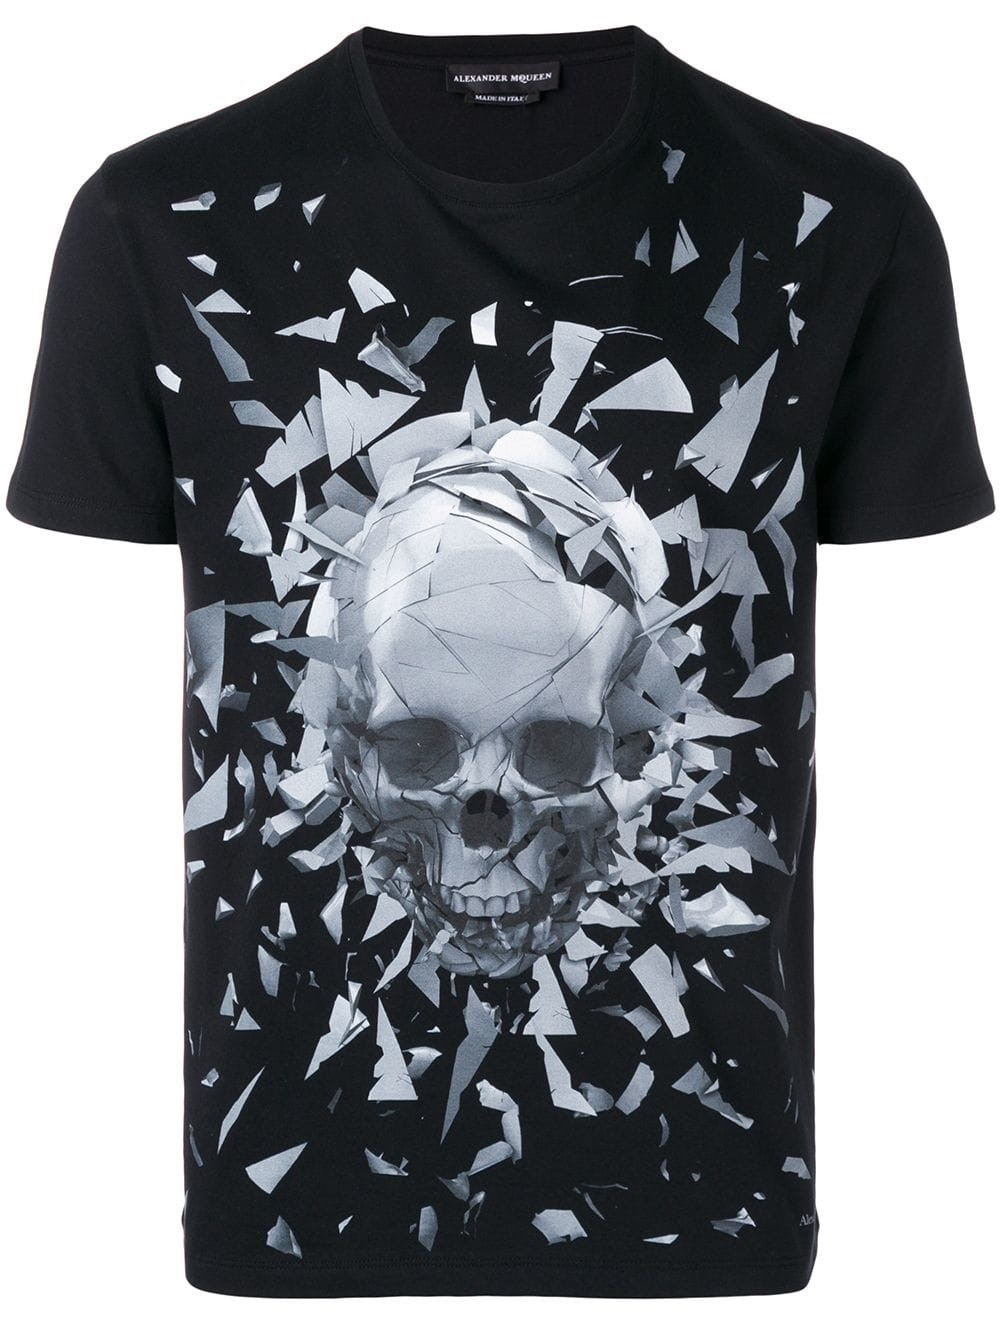 ca7d6a79 alexander mcqueen SKULL T-SHIRT available on montiboutique.com - 25711